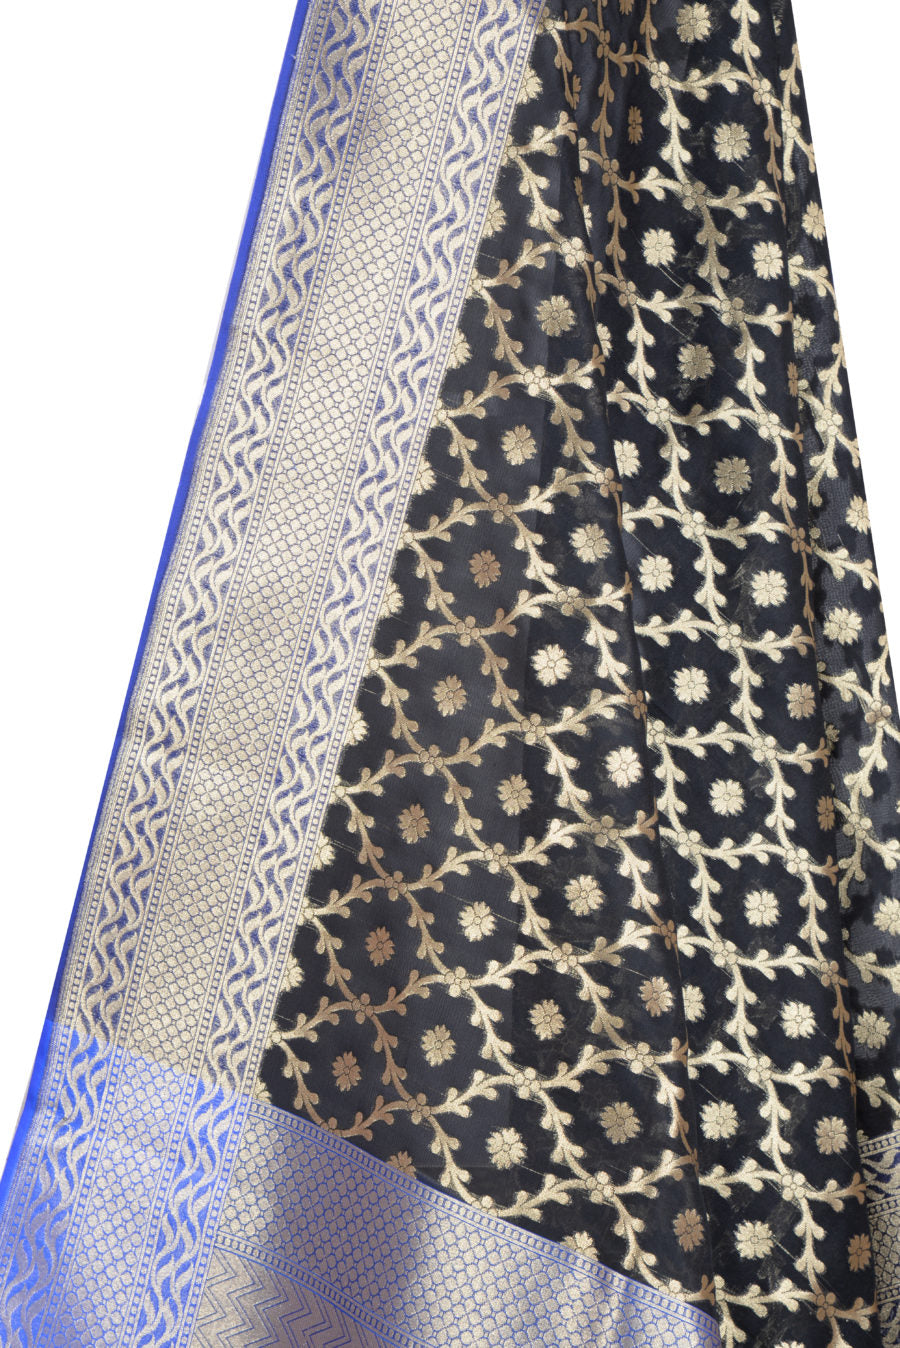 Black Banarasi Dupatta with mini leaf jaal and floral motifs (2) Closeup